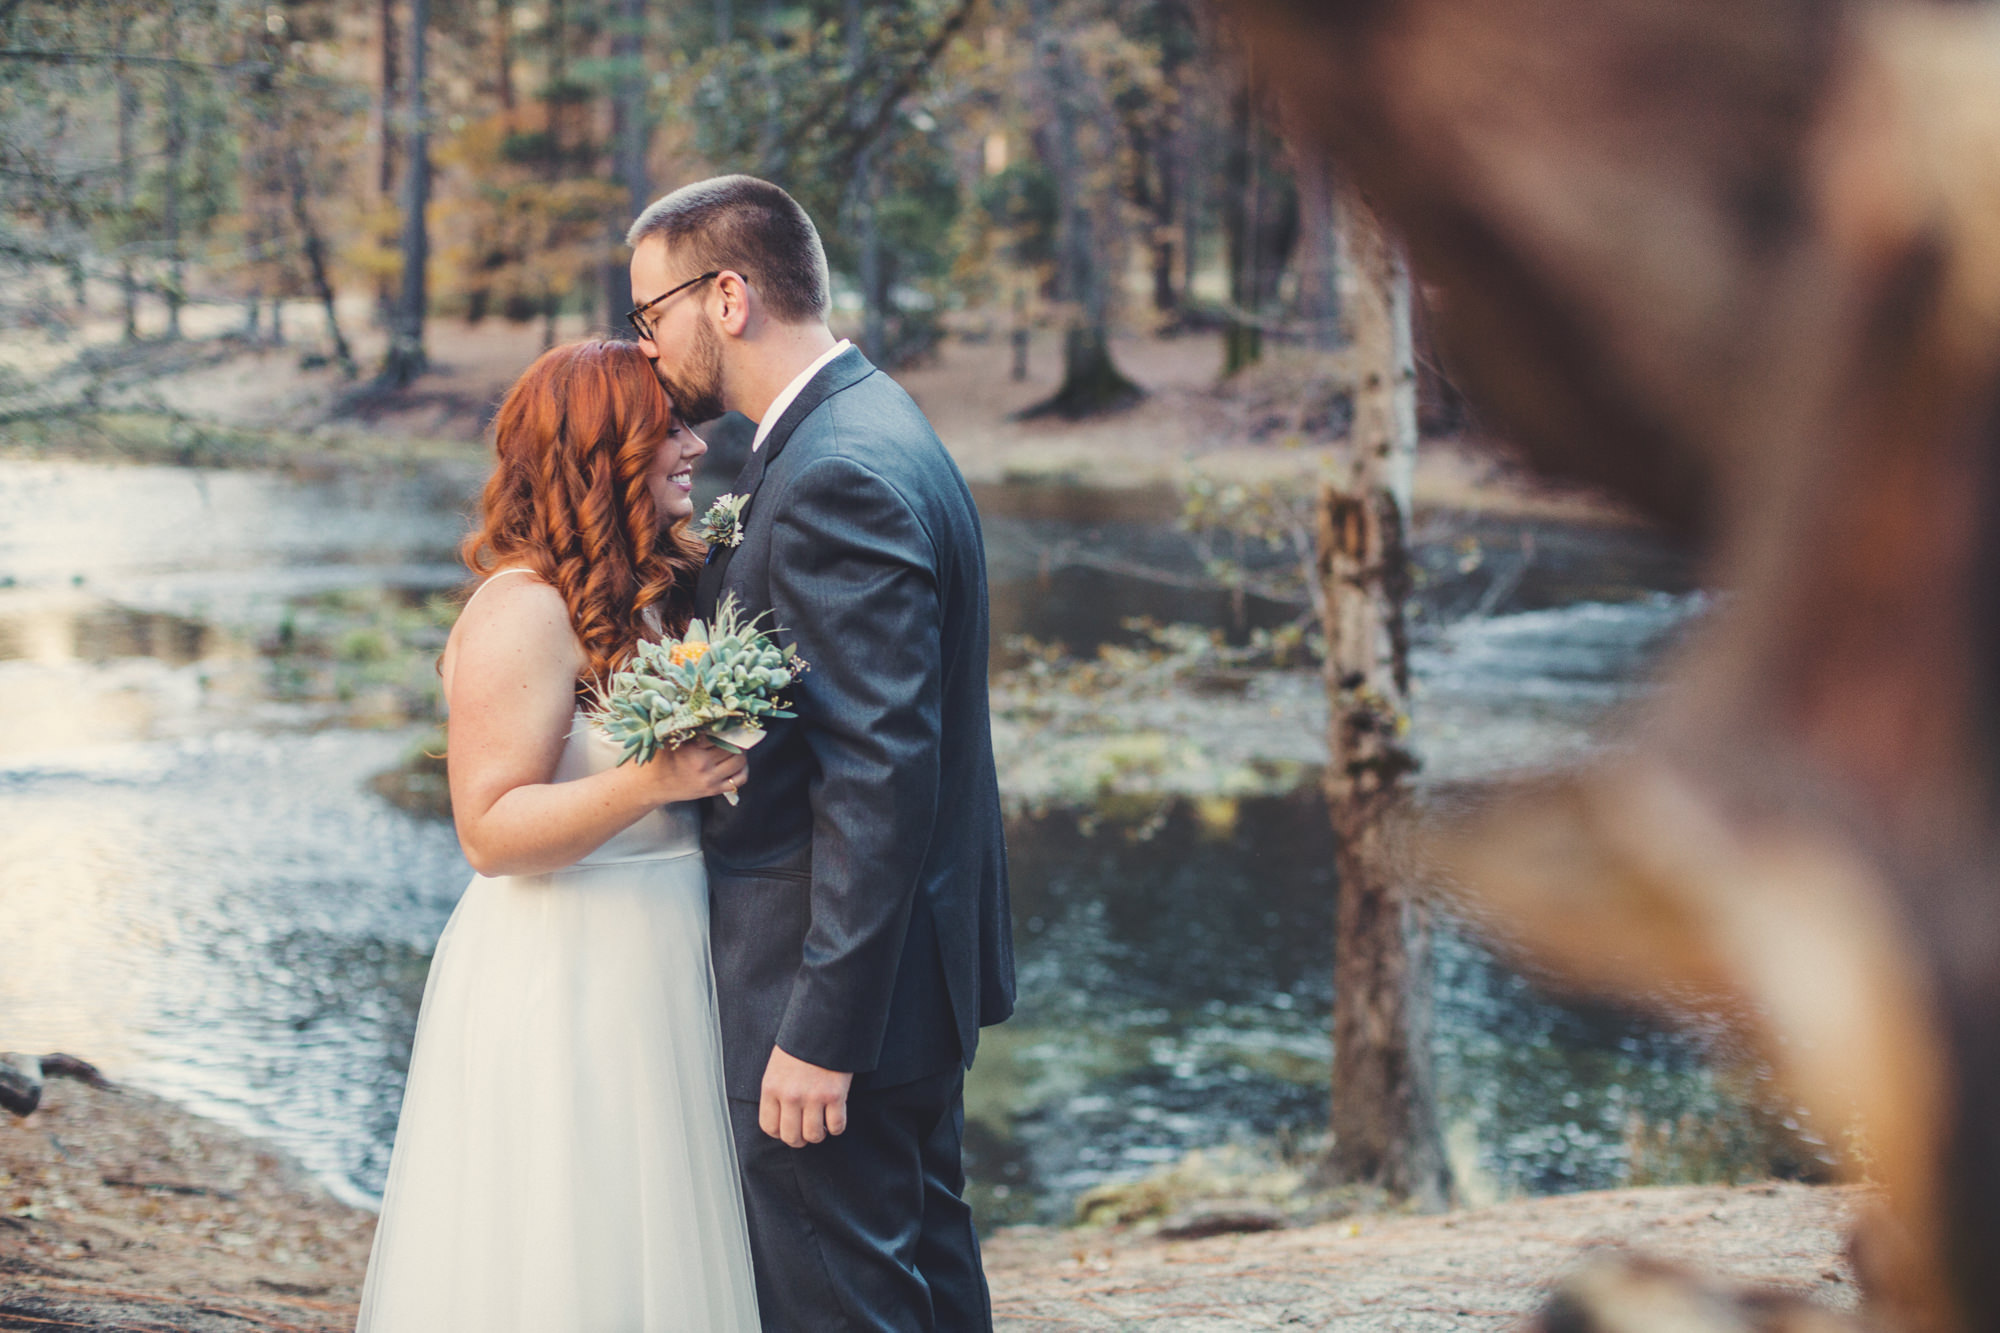 Yosemite wedding ©Anne-Claire Brun 51